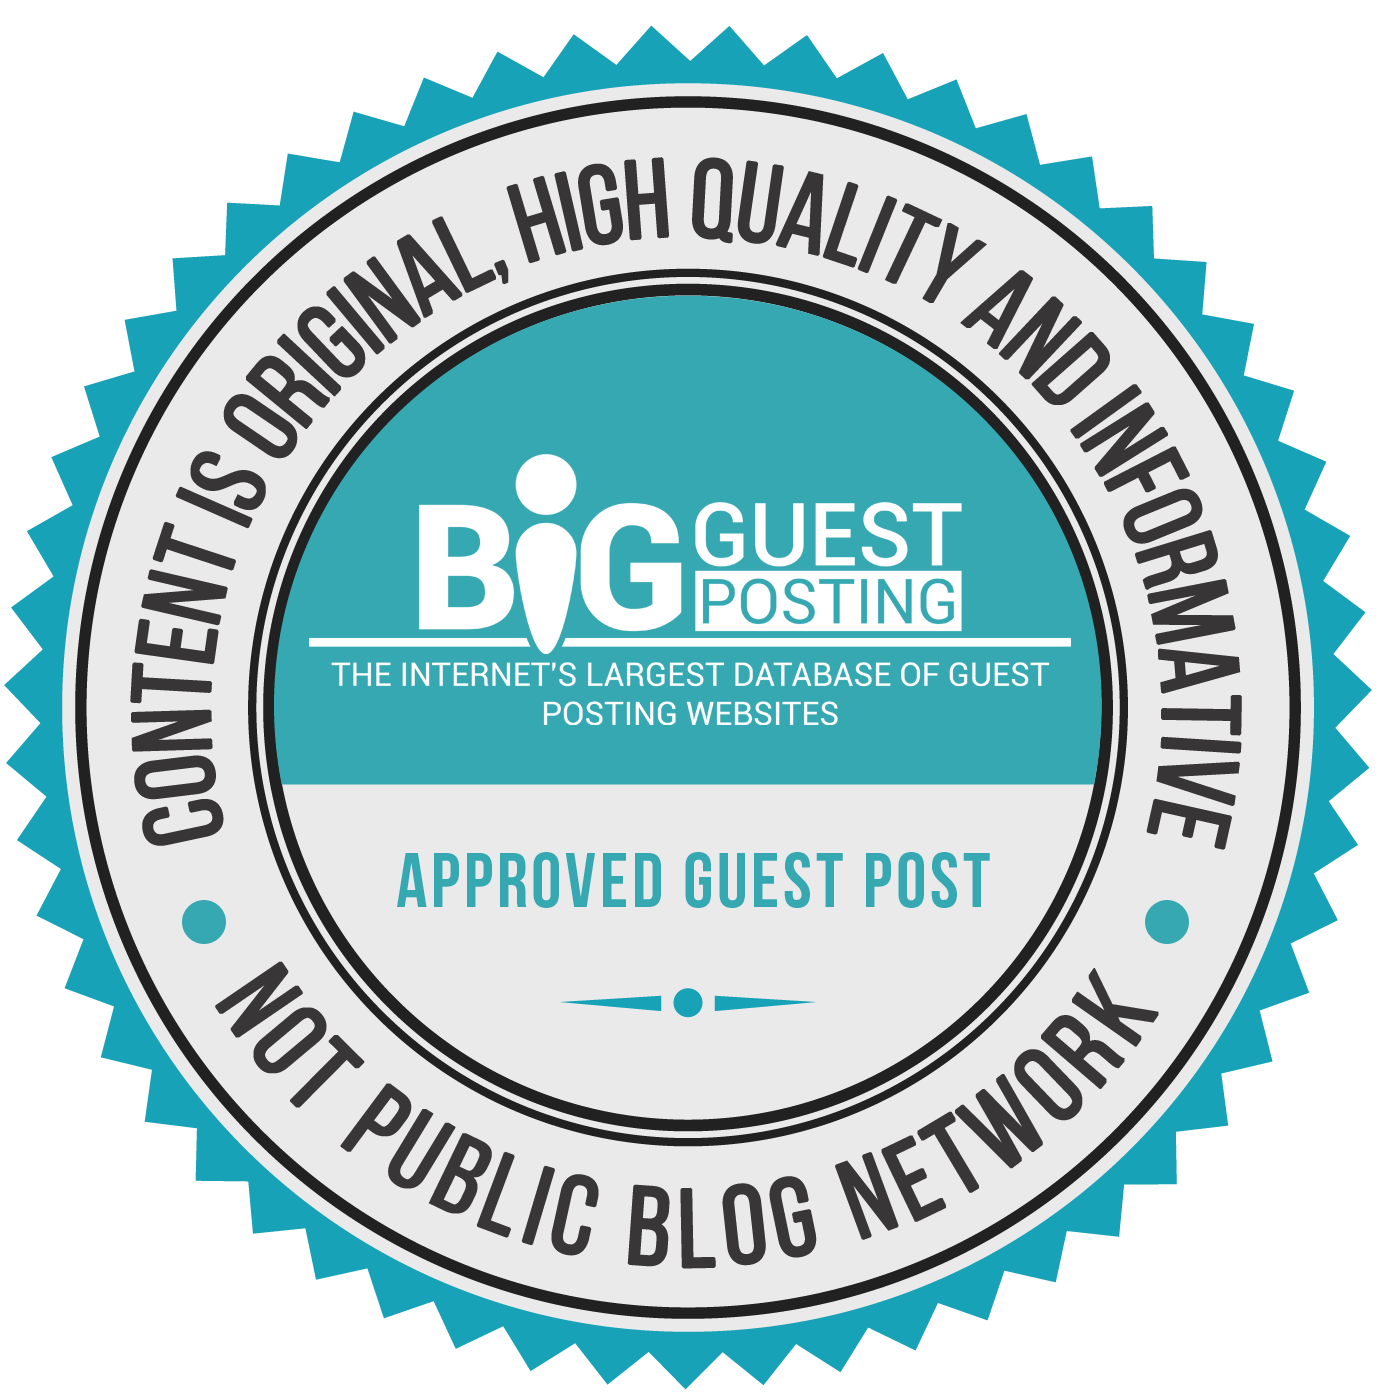 BigGuestPosting Approved Blog